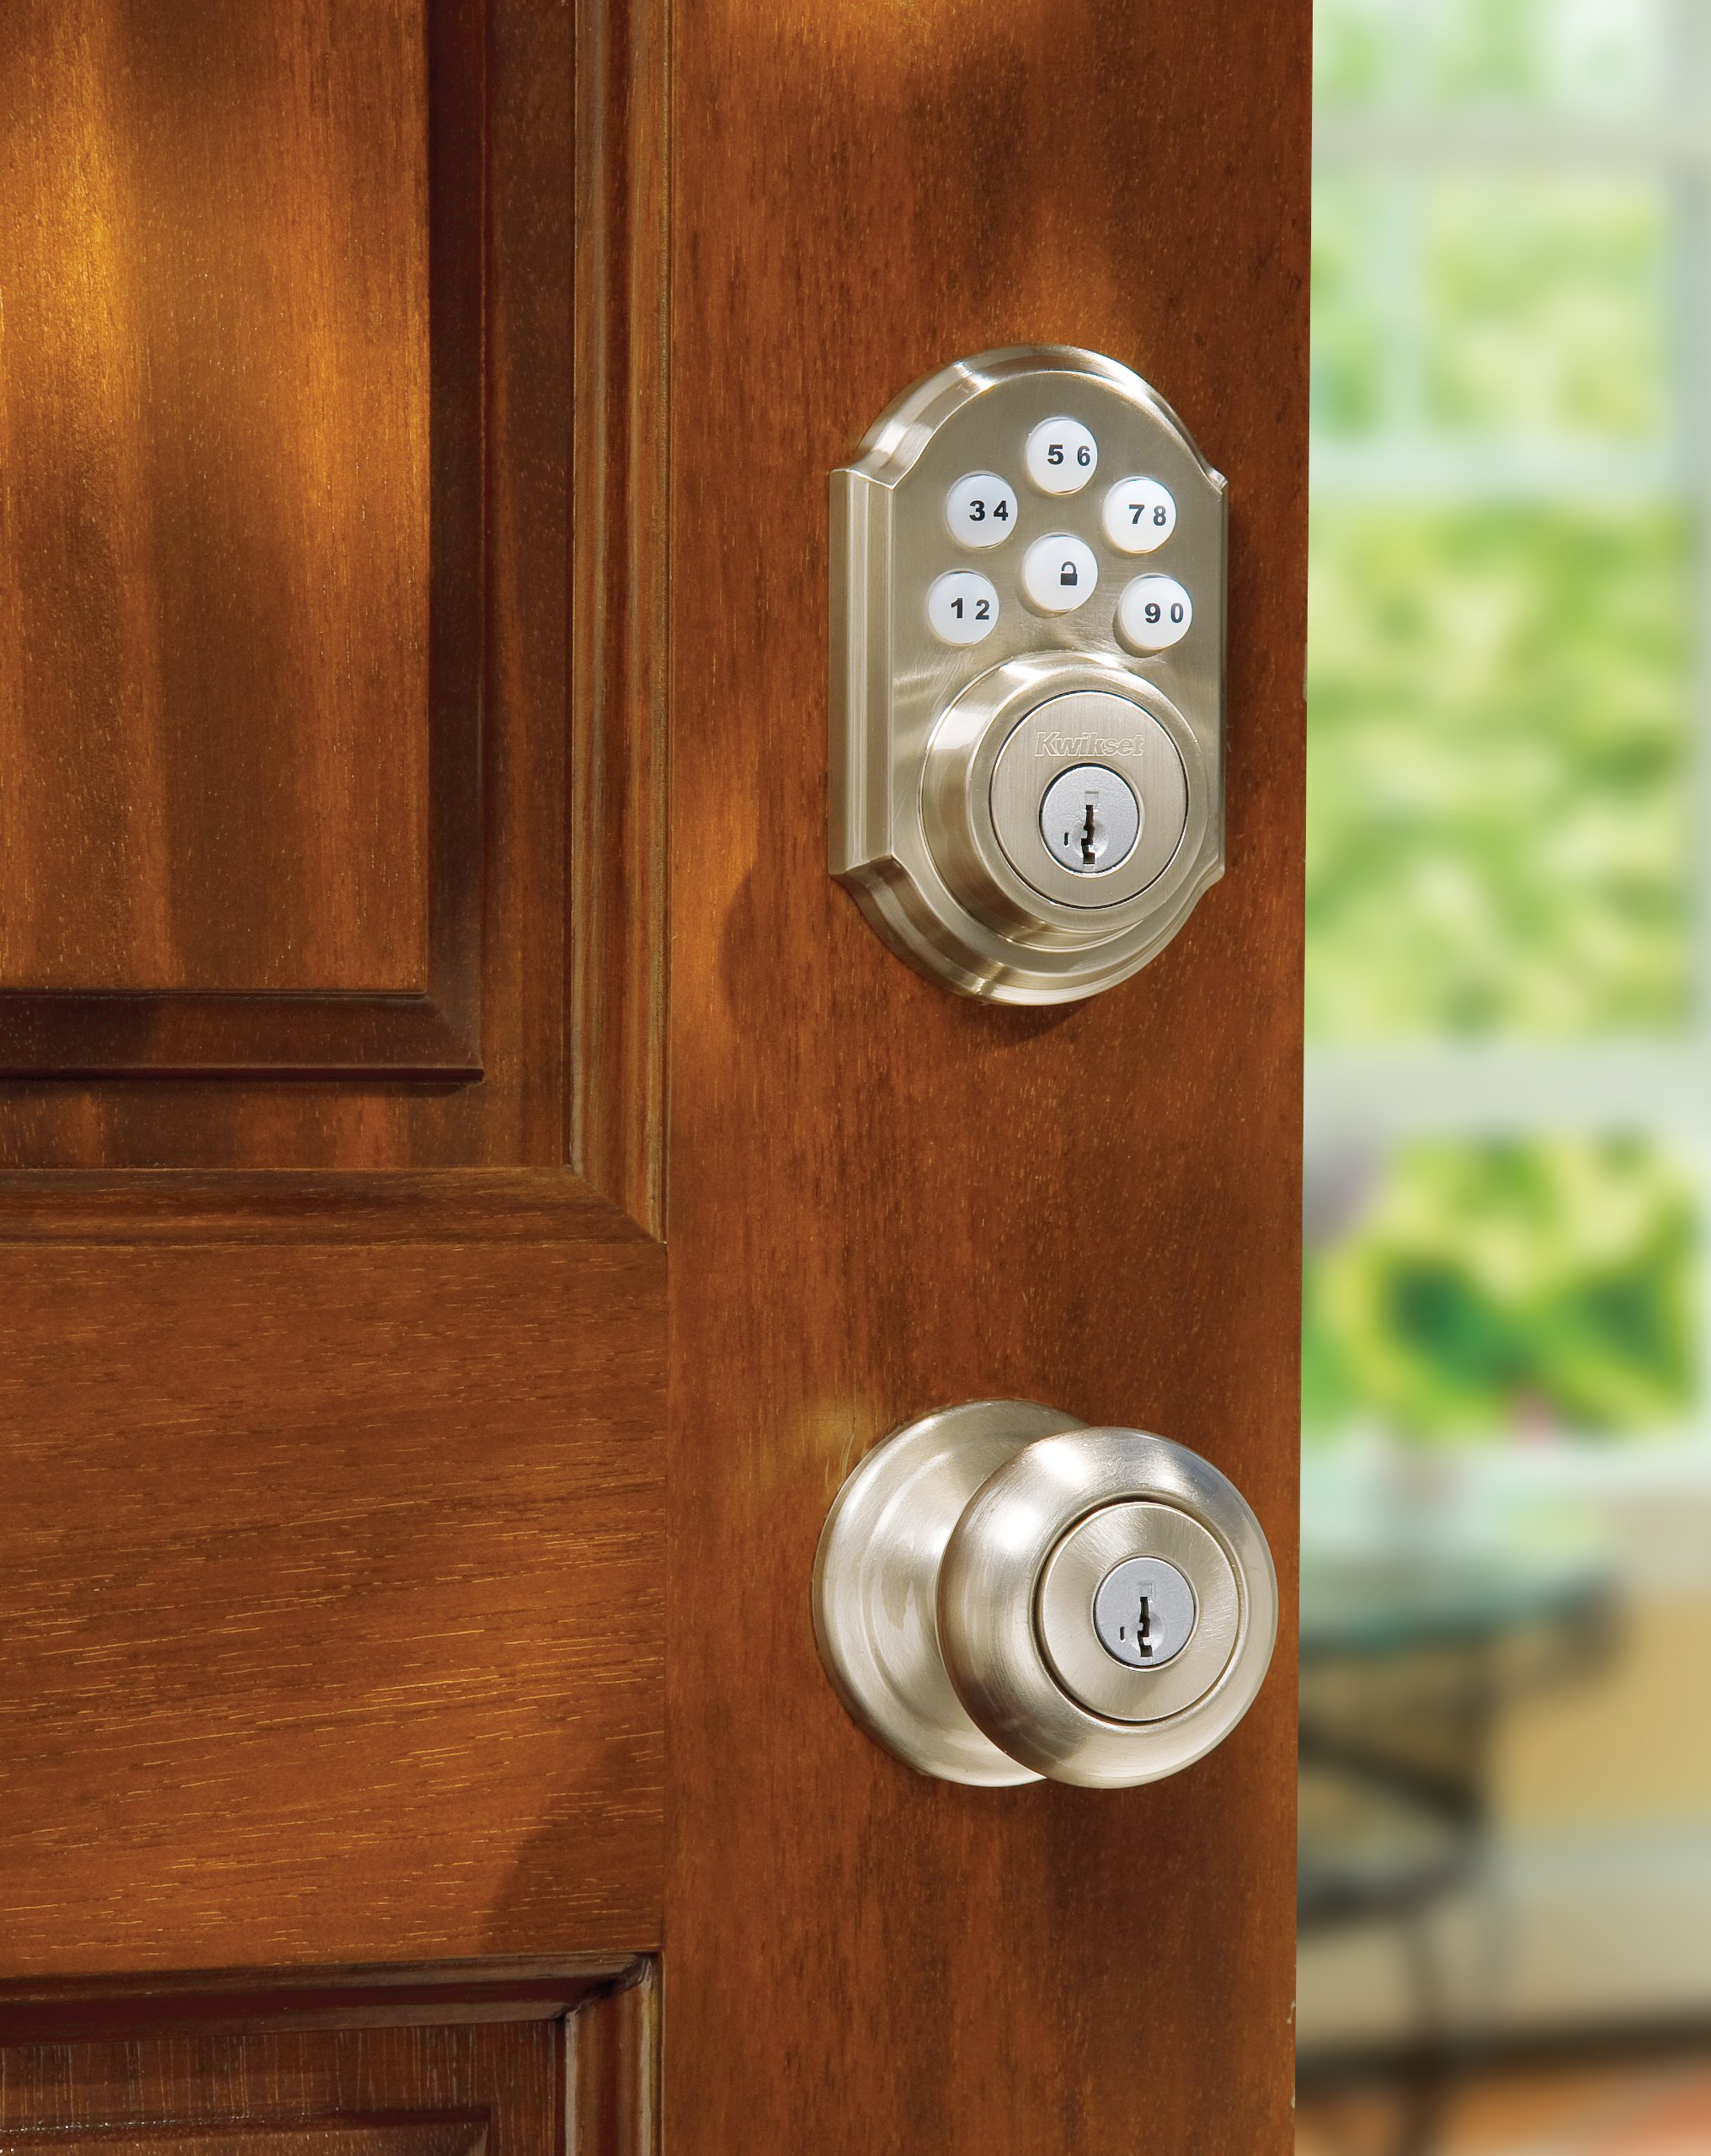 Kwikset 909 SmartCode Electronic Deadbolt featuring SmartKey in Satin Nickel